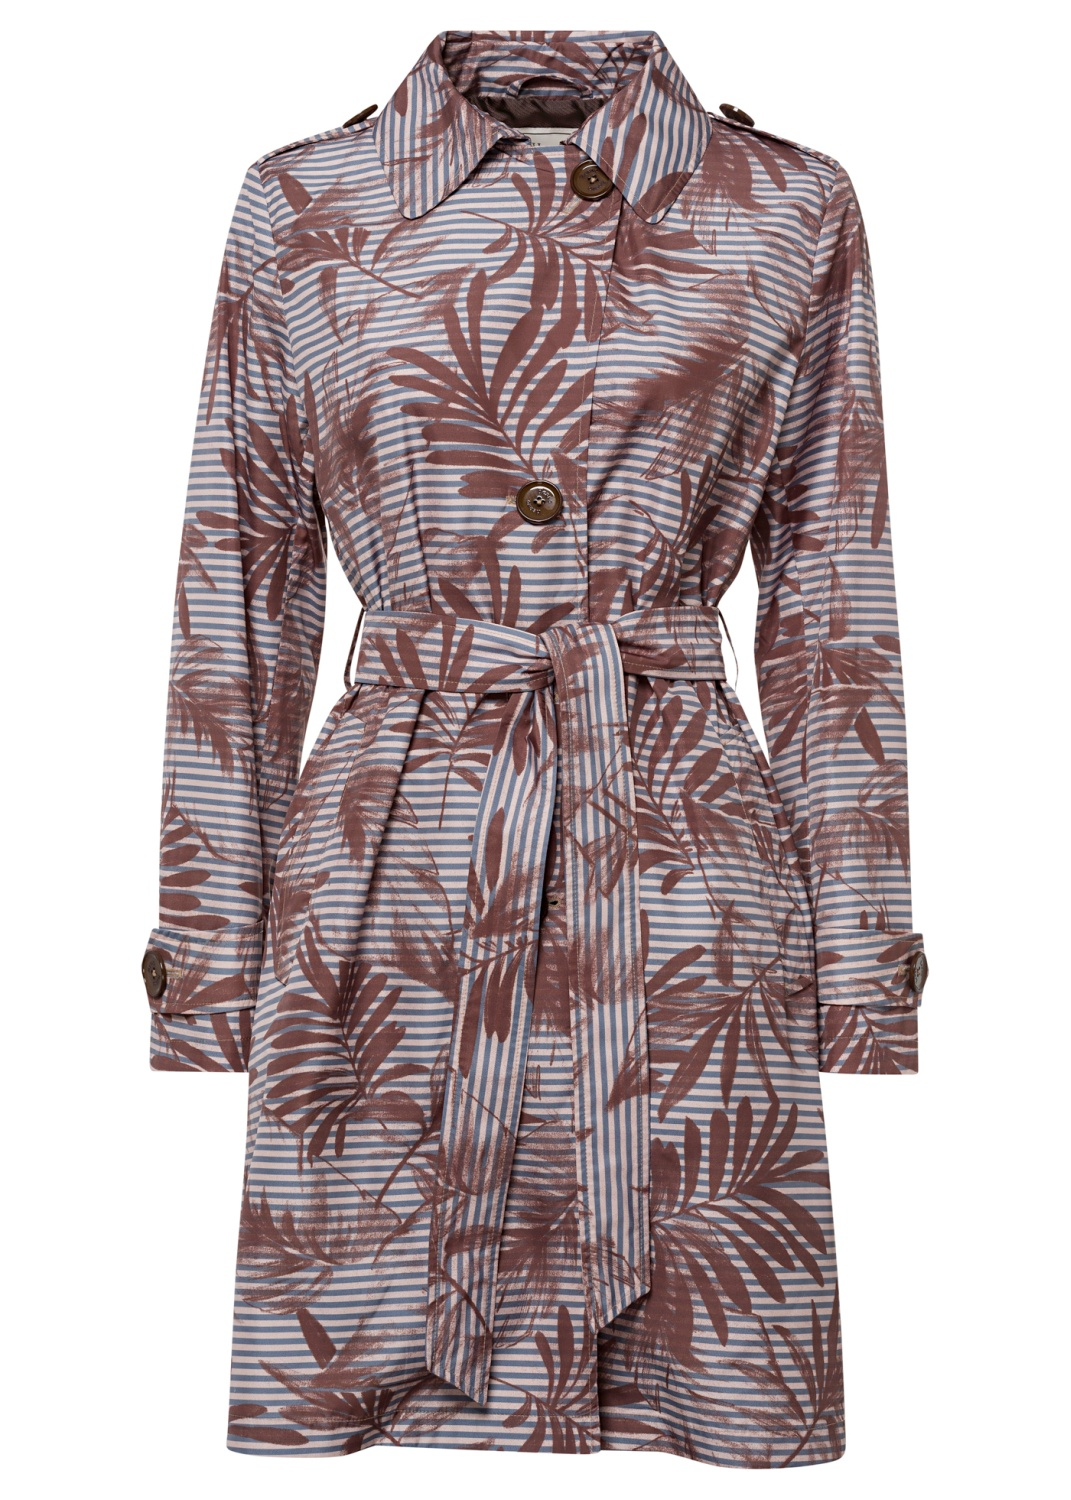 Woman's Woven Raincoat image number 0